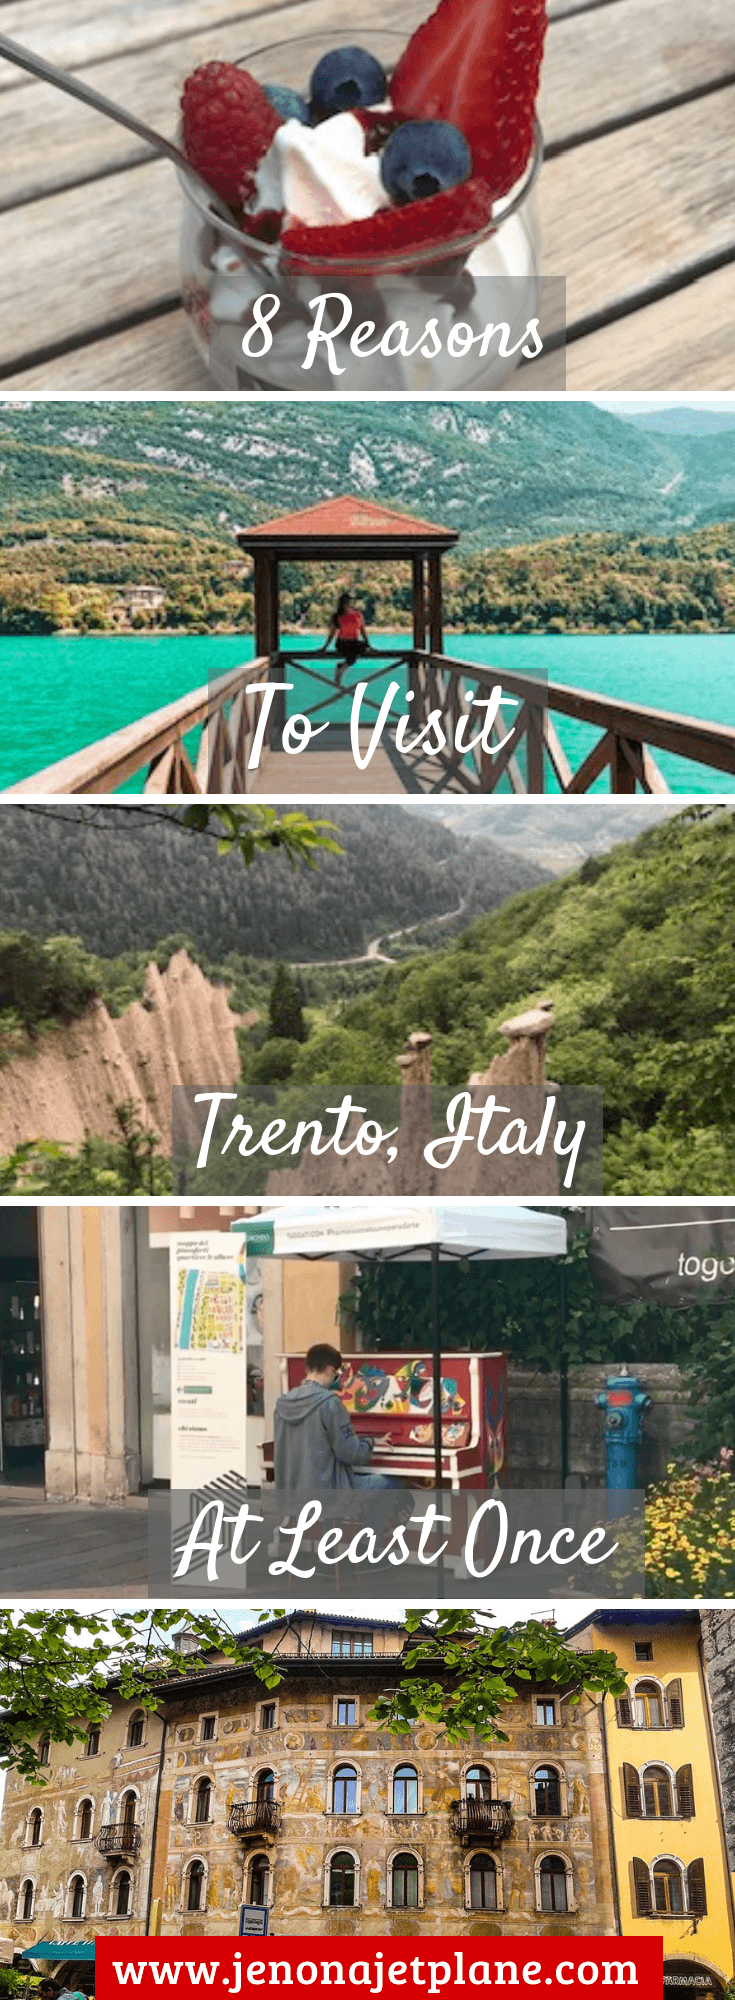 Thinking about visiting Trento, Italy? From its award winning Trento Doc brand to untouched natural experiences, here are 8 reasons why you need to add Trento, Italy to your bucket list! #trentoitaly #italytravel #bucketlist